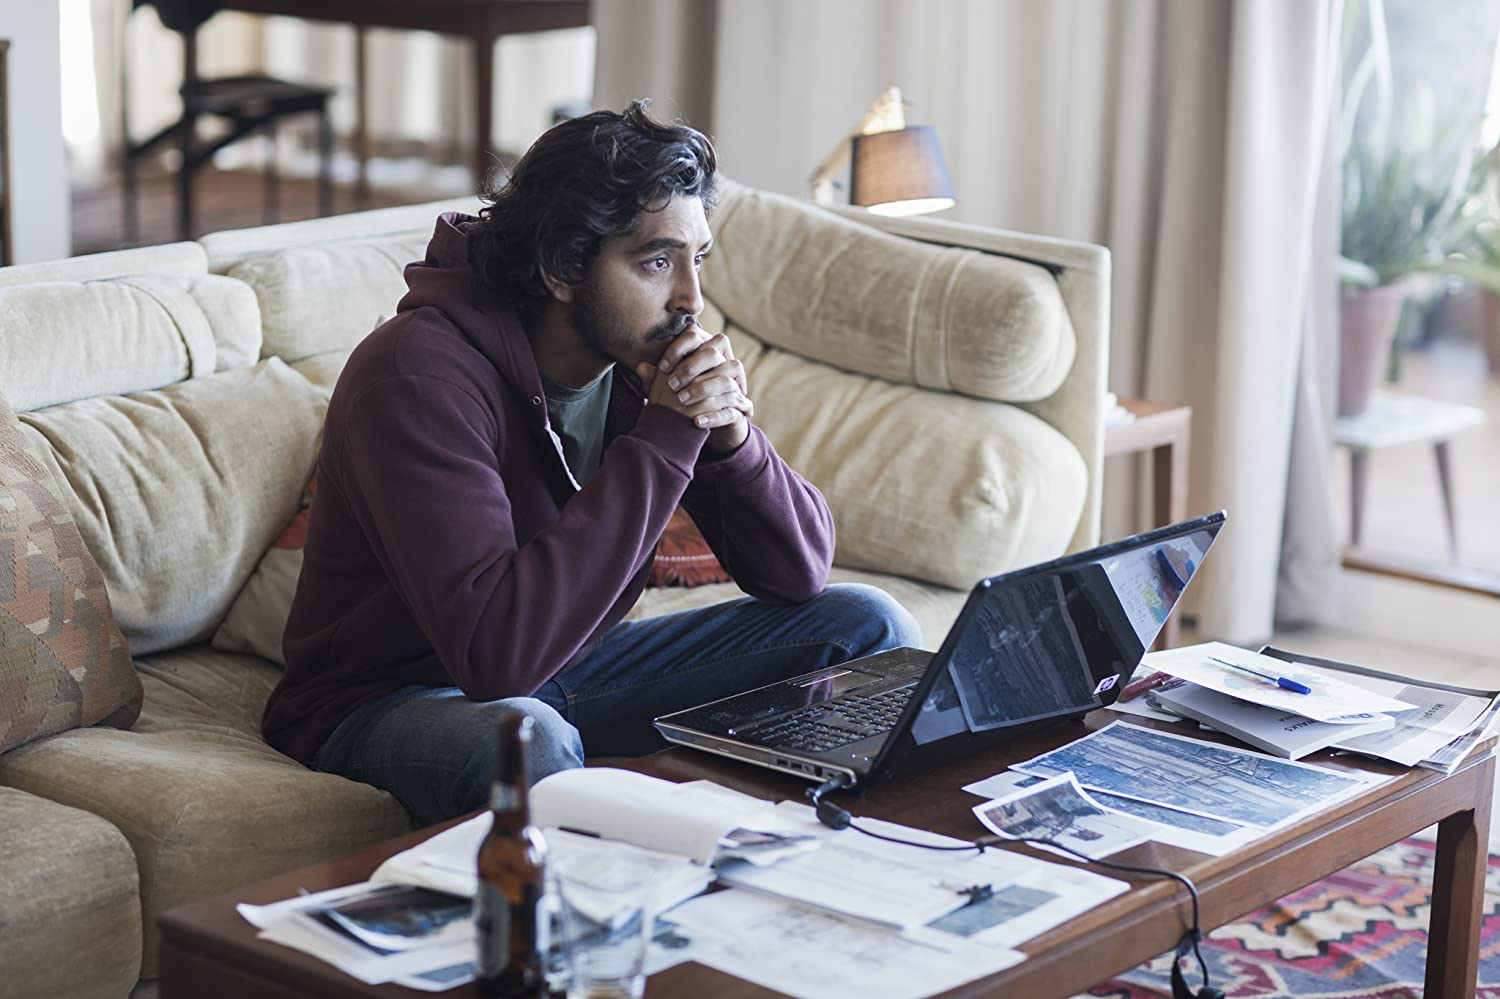 Dev Patel in 'Lion' (Courtesy: Long Way Productions)